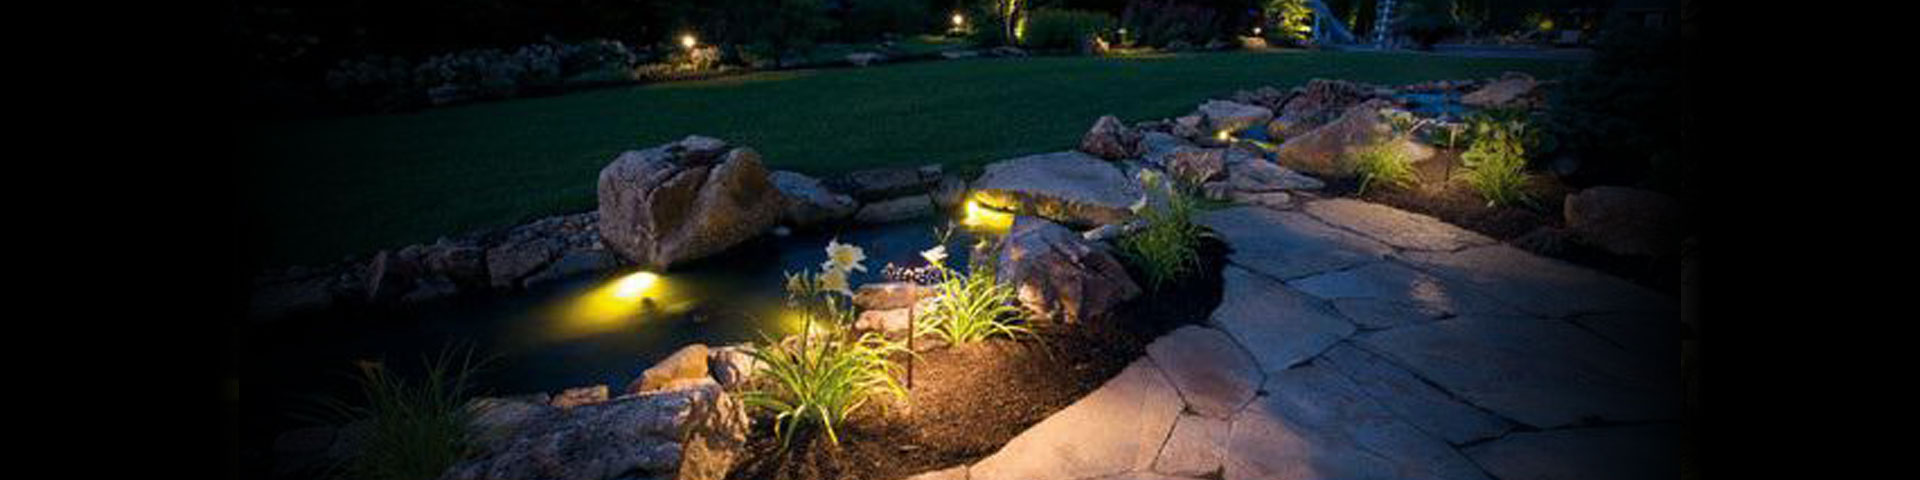 landscape lighting job done by affordable irrigation tulsa